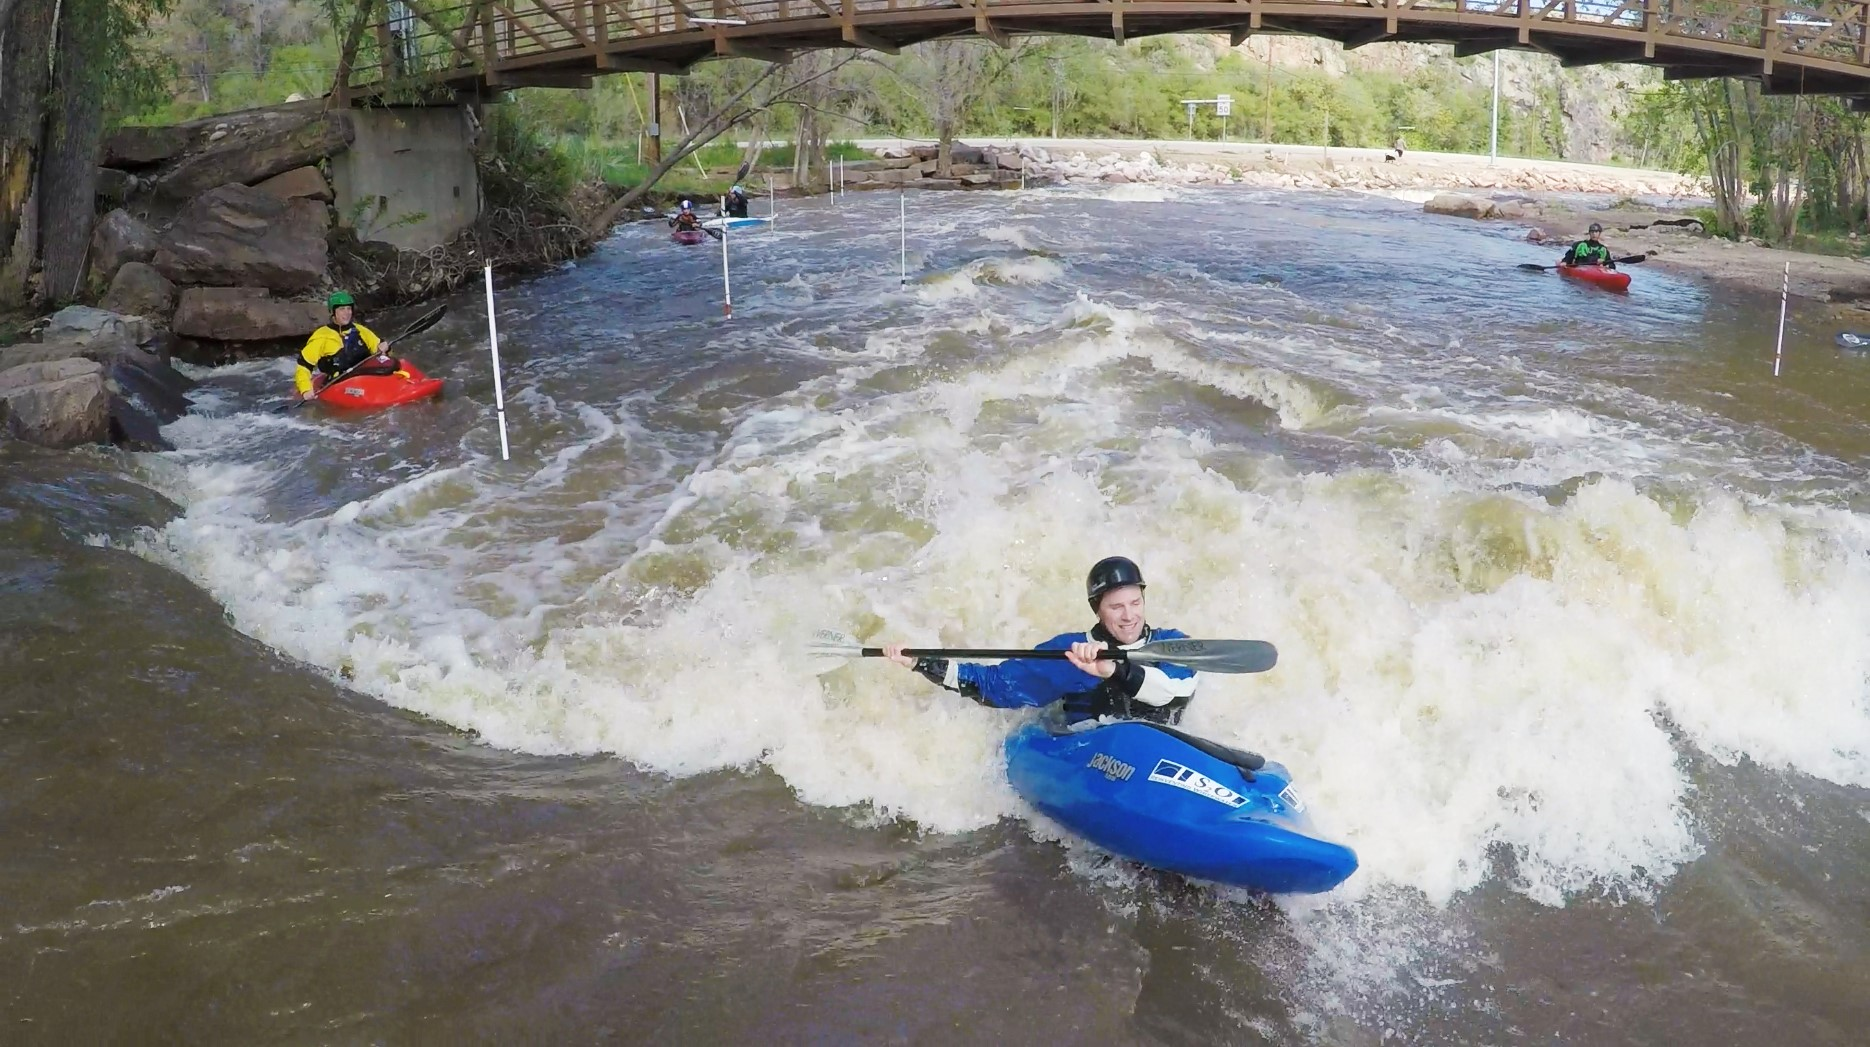 Whitewater Park in Lyons, CO